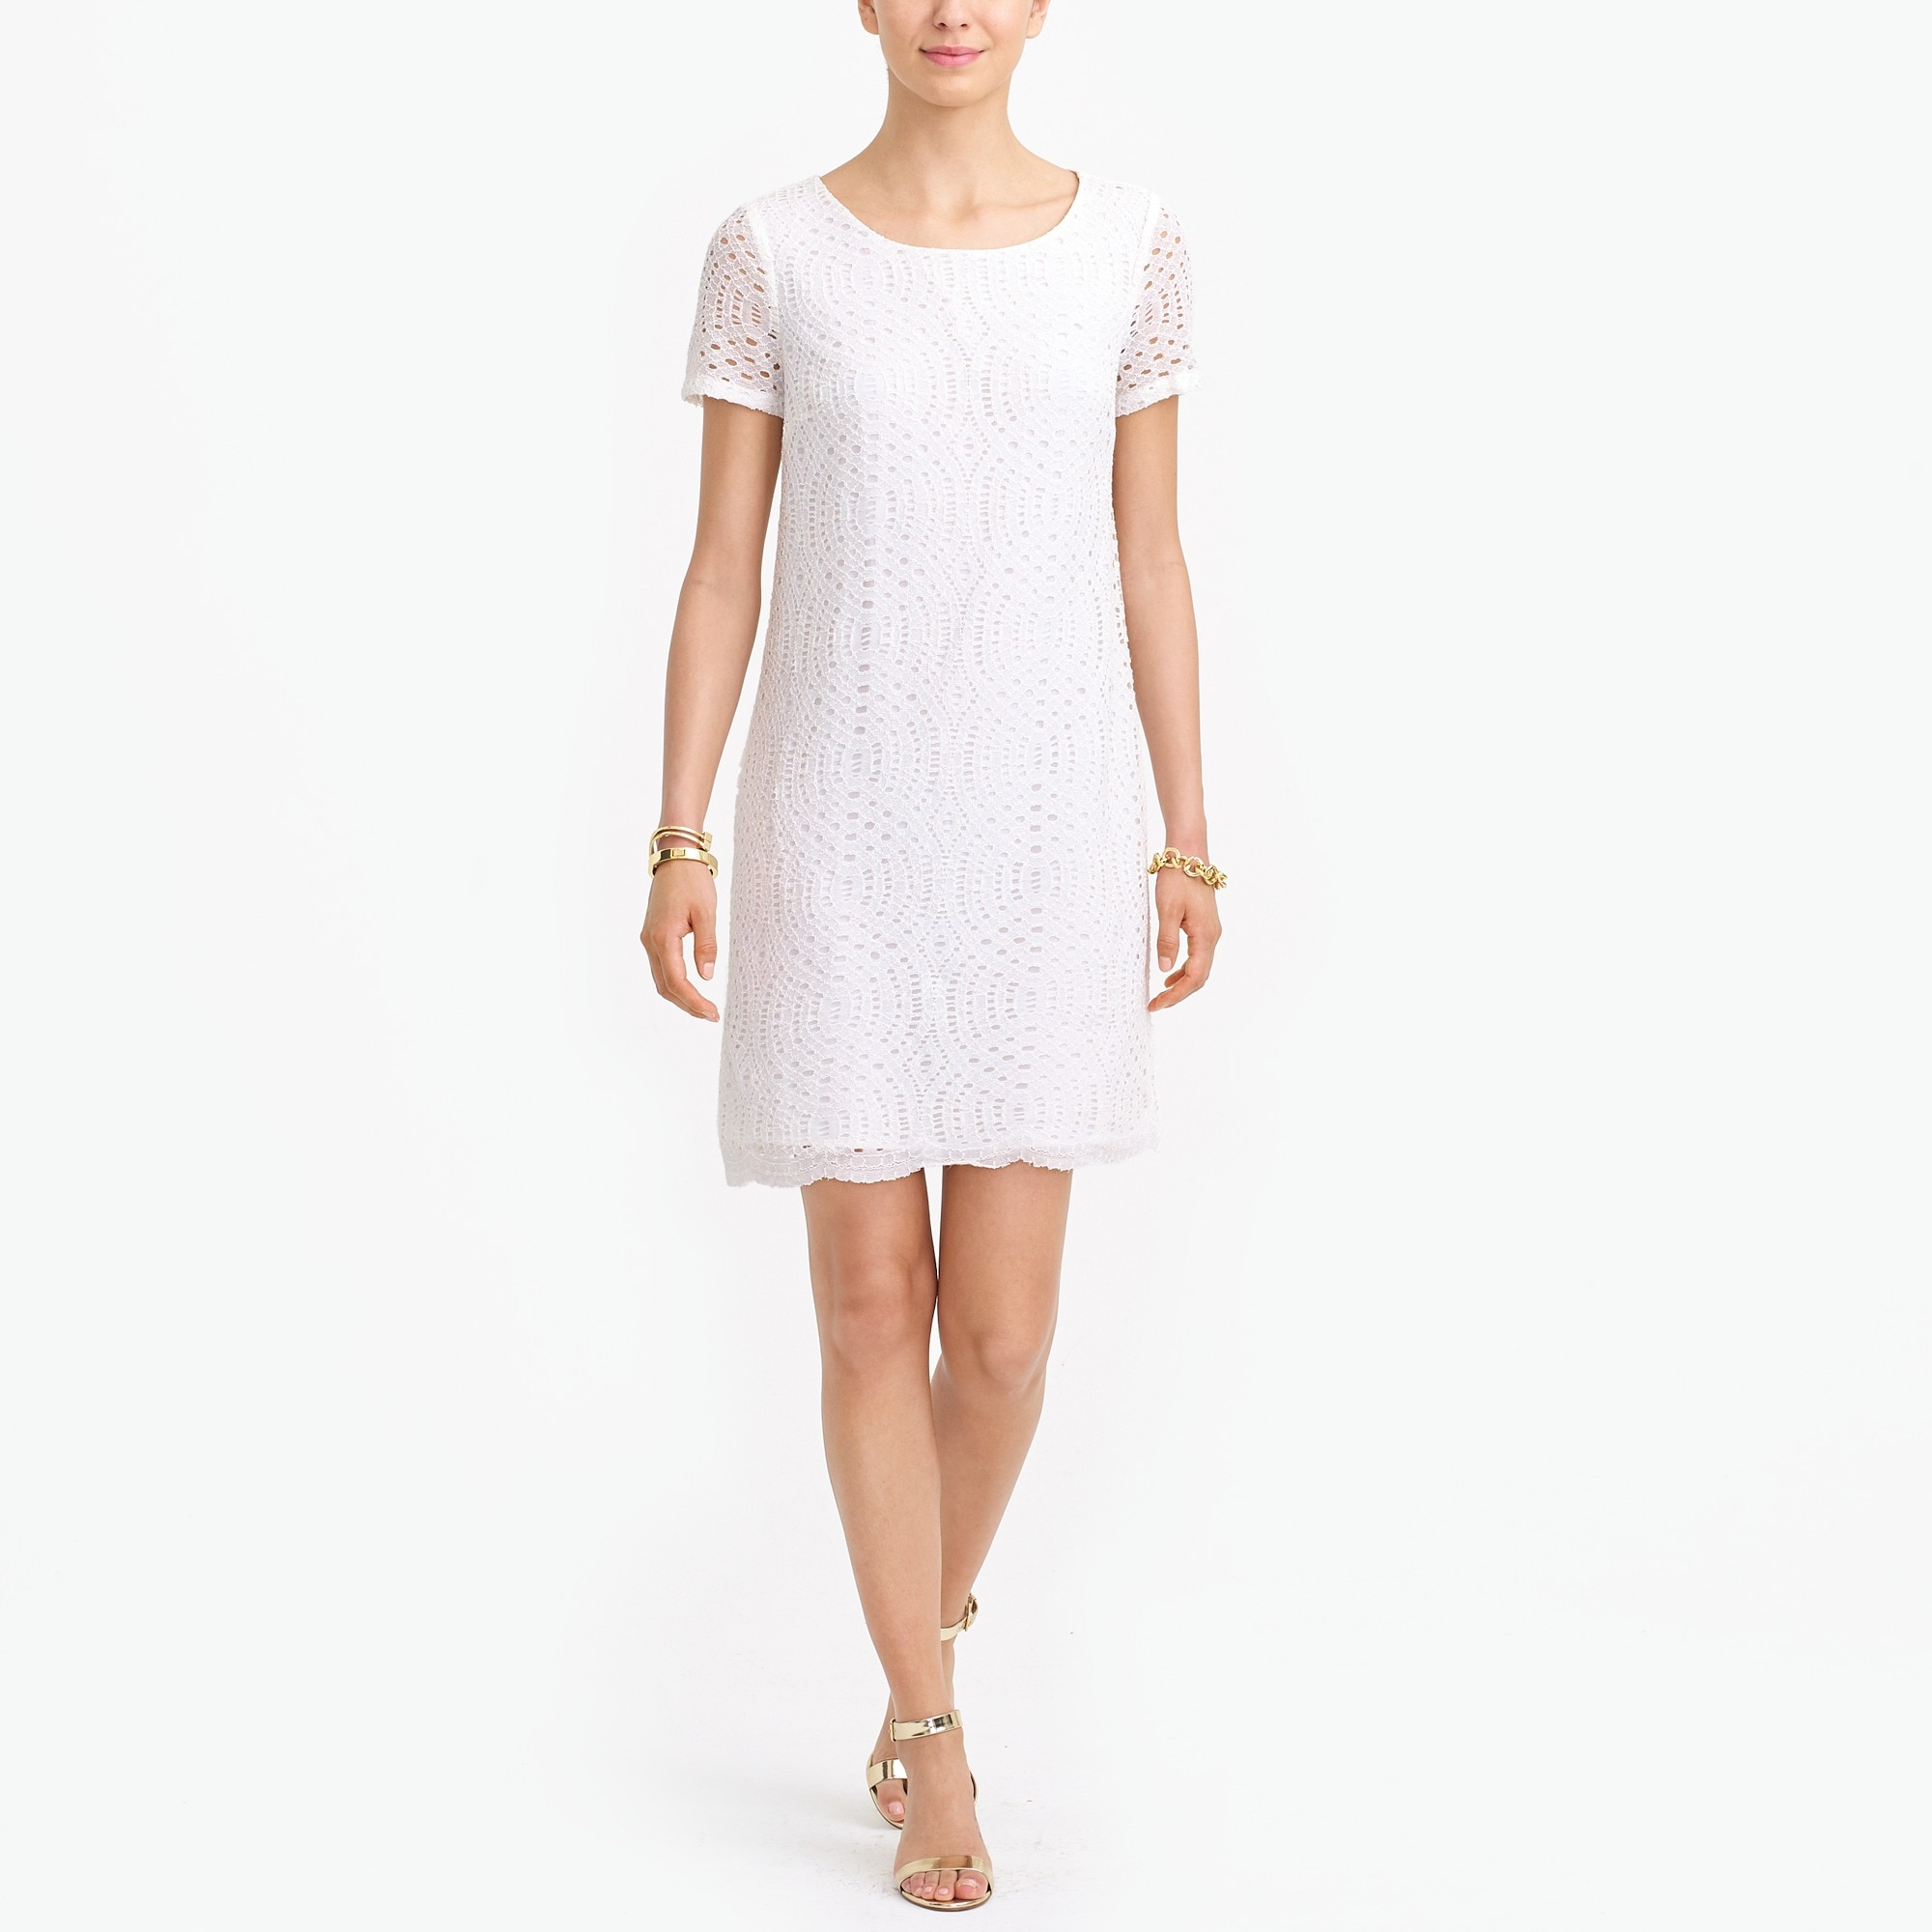 Lace dress with scalloped hem factorywomen new arrivals c